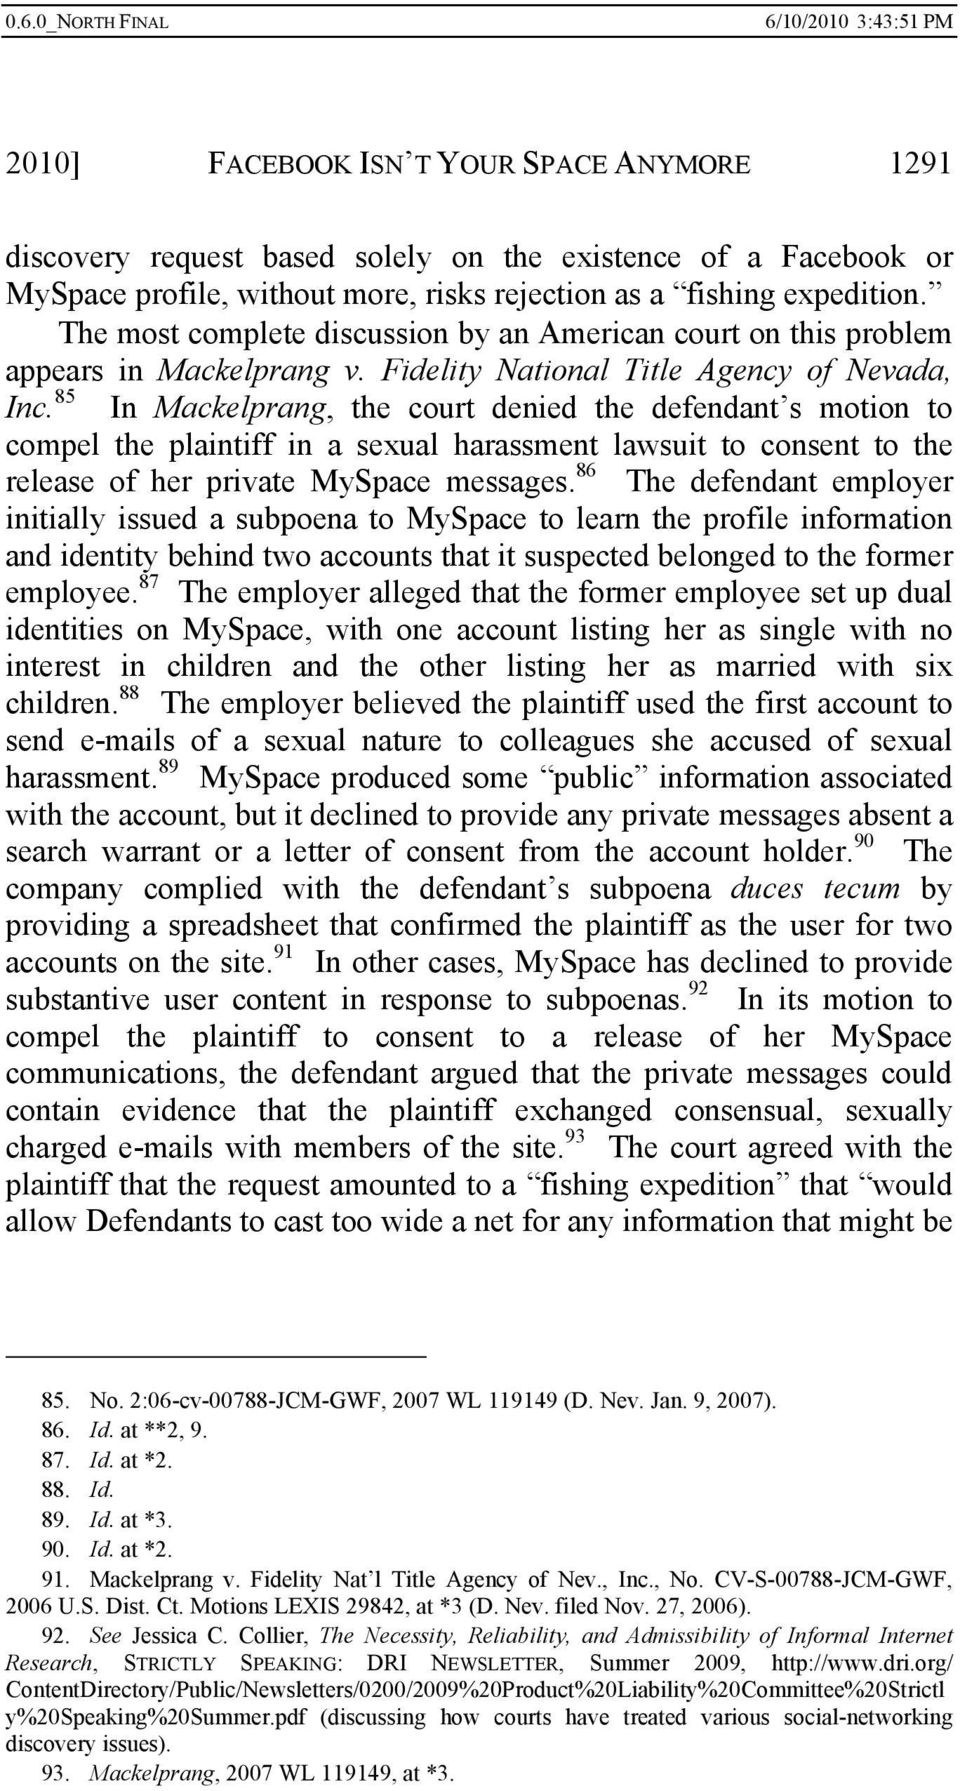 85 In Mackelprang, the court denied the defendant s motion to compel the plaintiff in a sexual harassment lawsuit to consent to the release of her private MySpace messages.